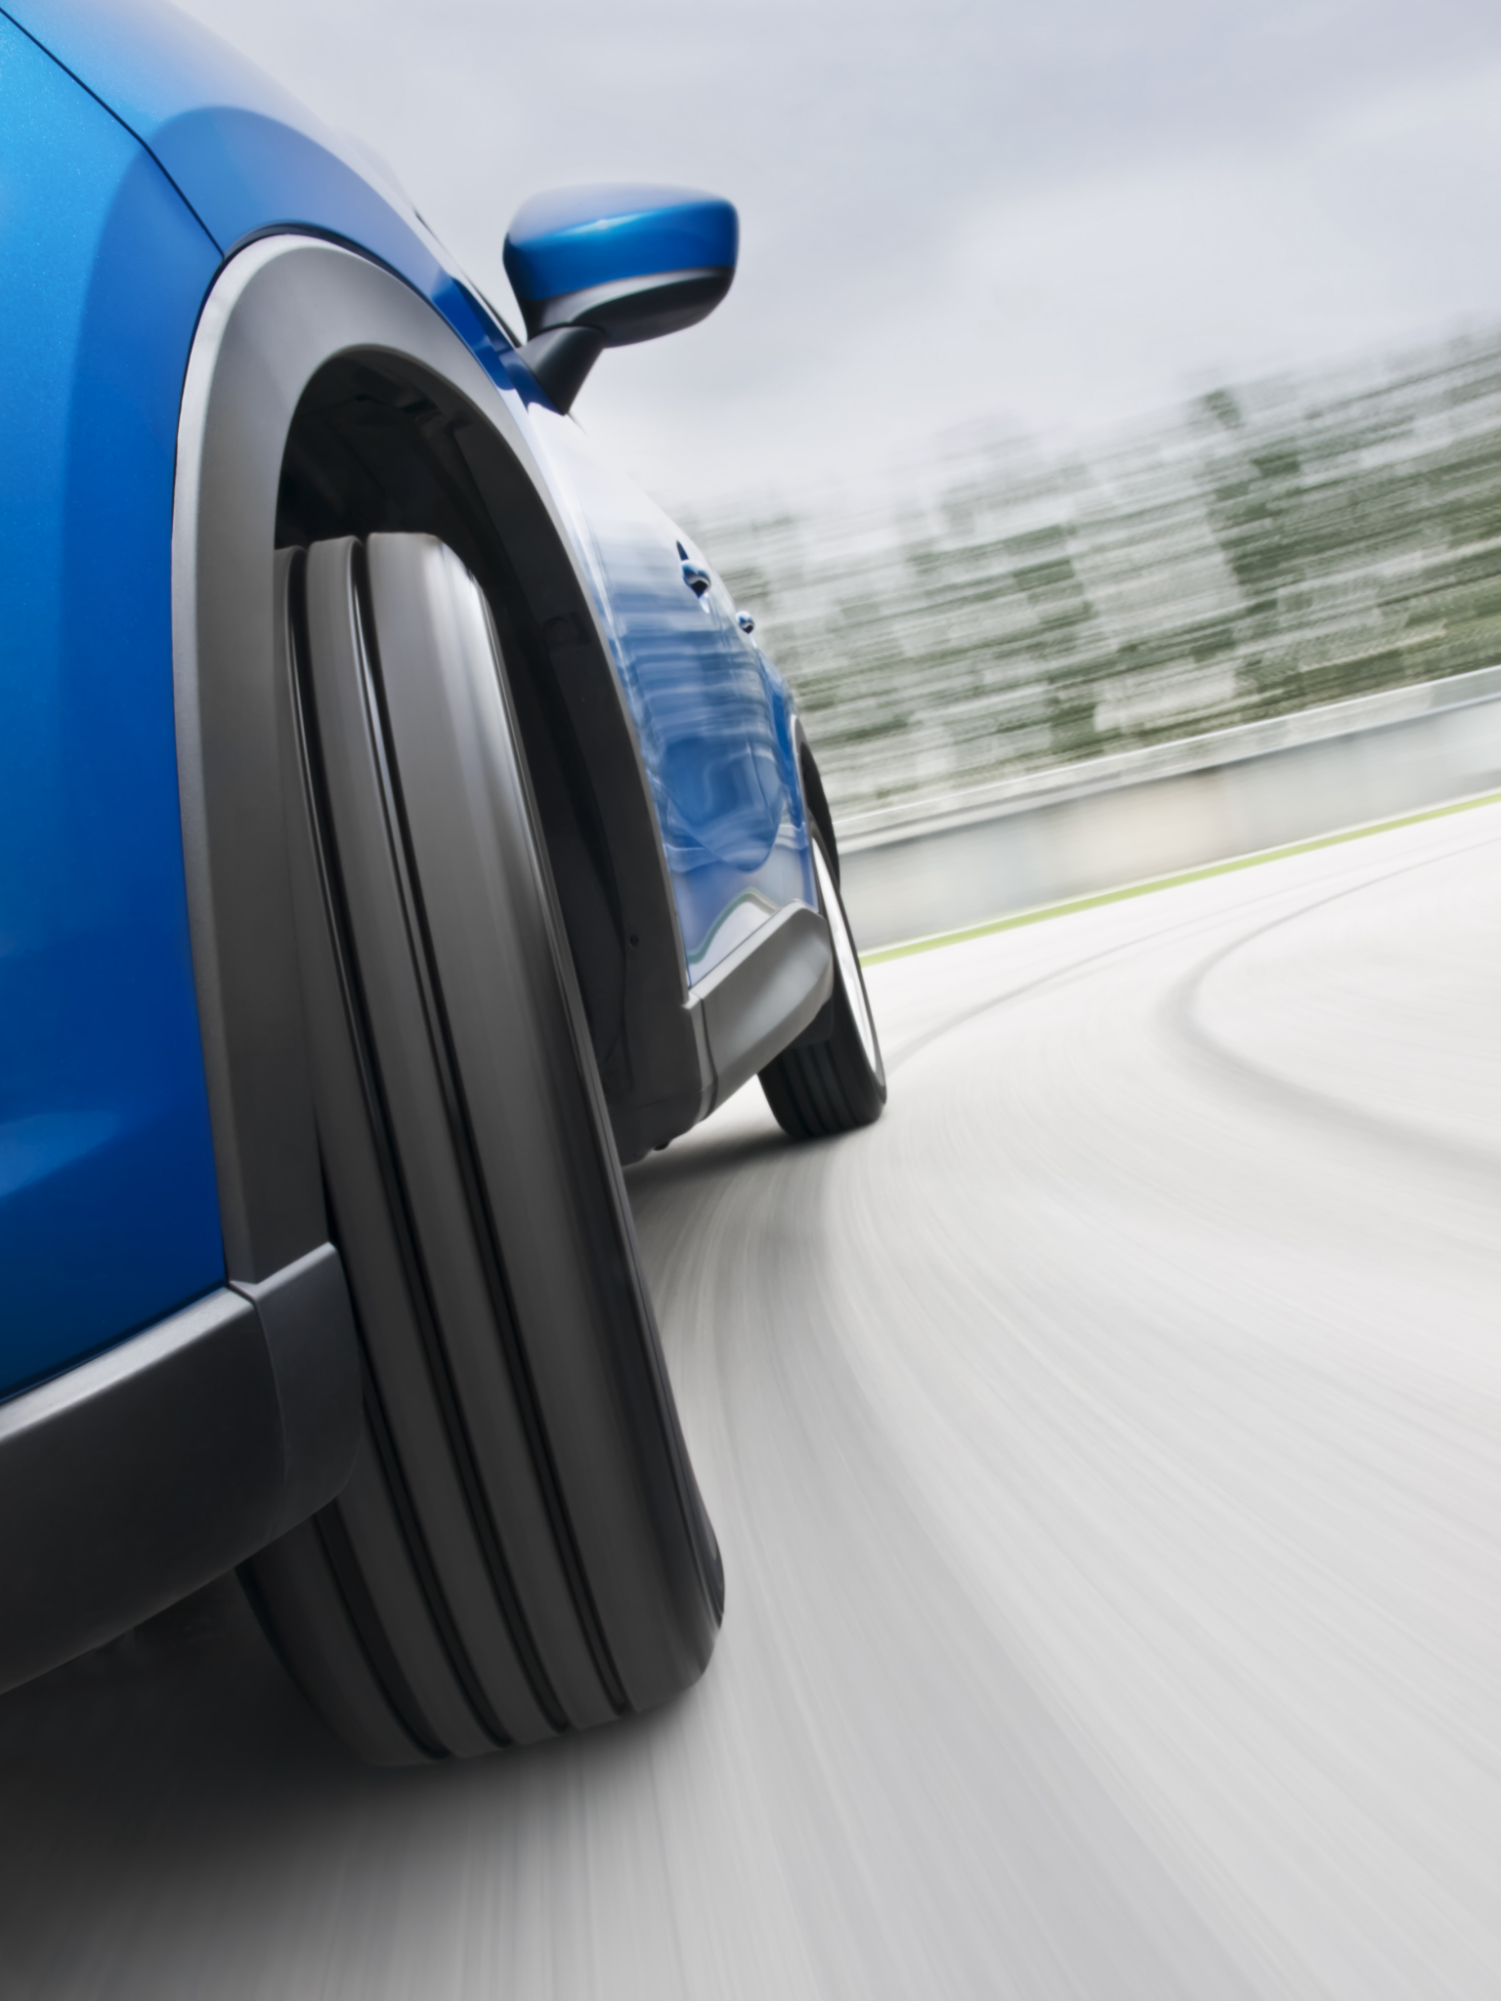 How Much Air Pressure Should Be In A Tire?